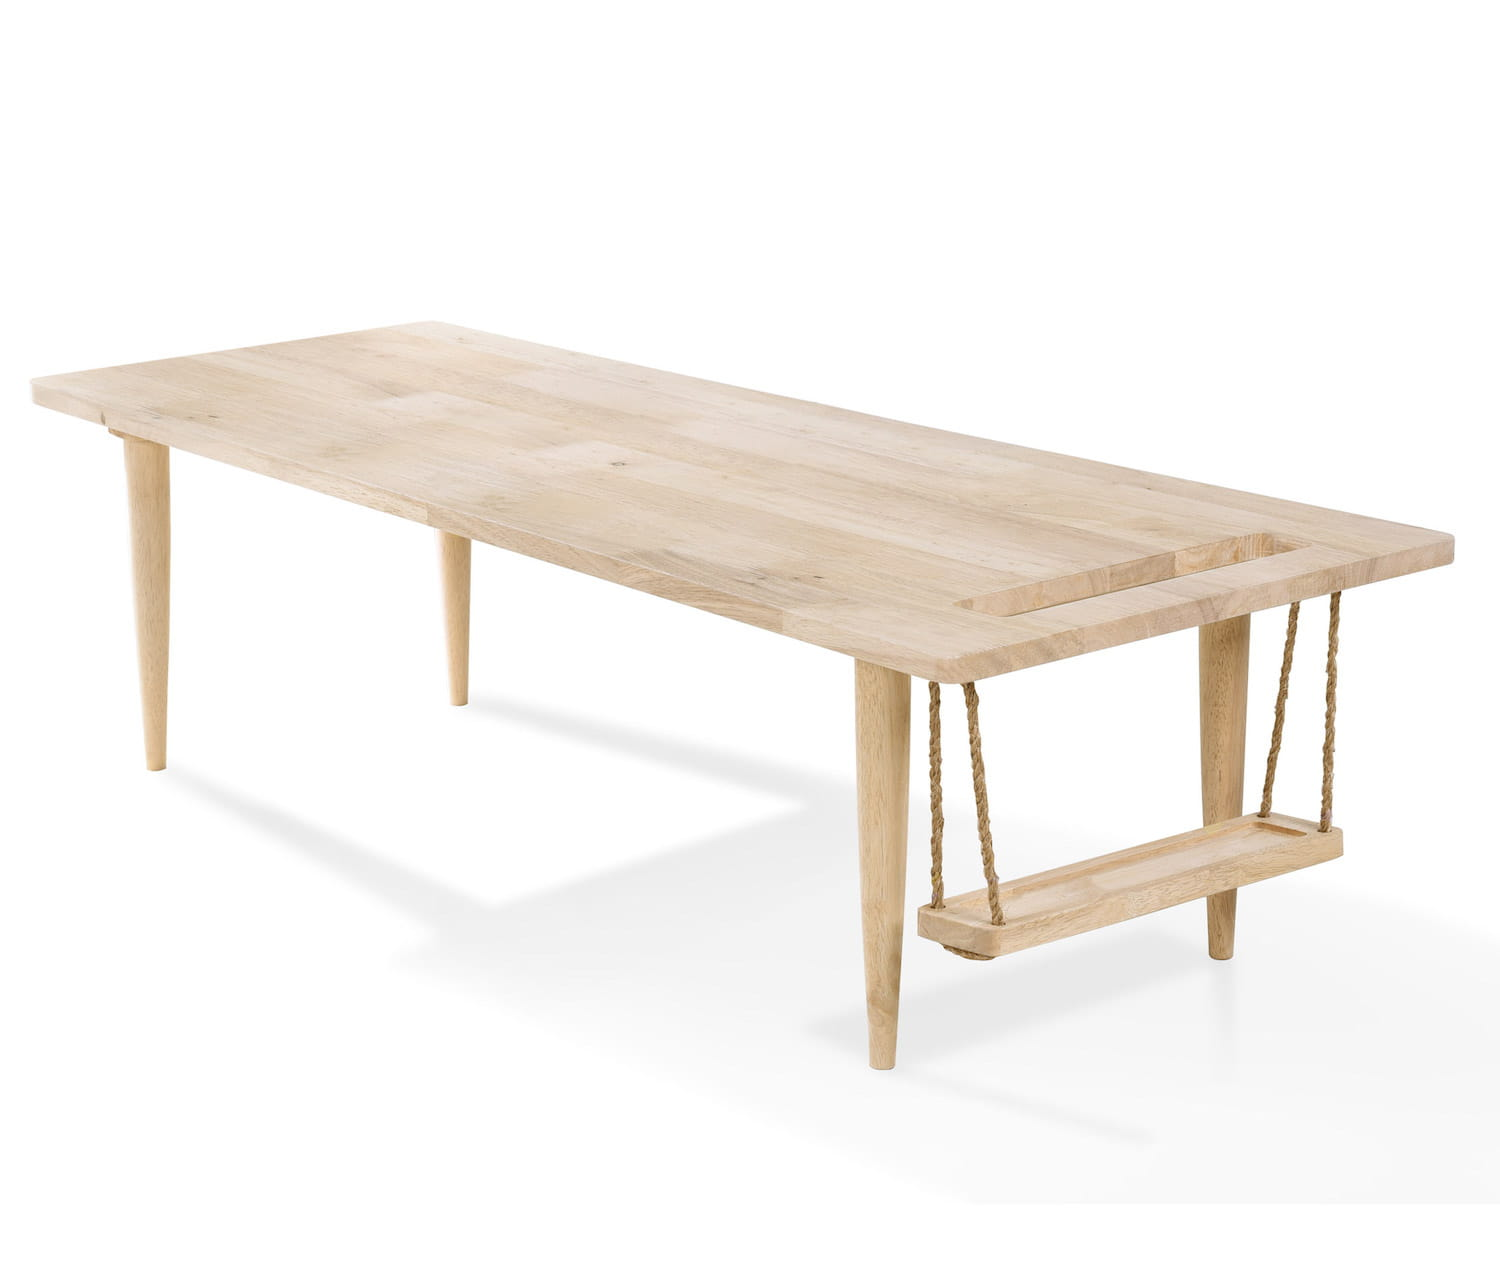 Une table basse originale - Fabriquer une table basse originale ...